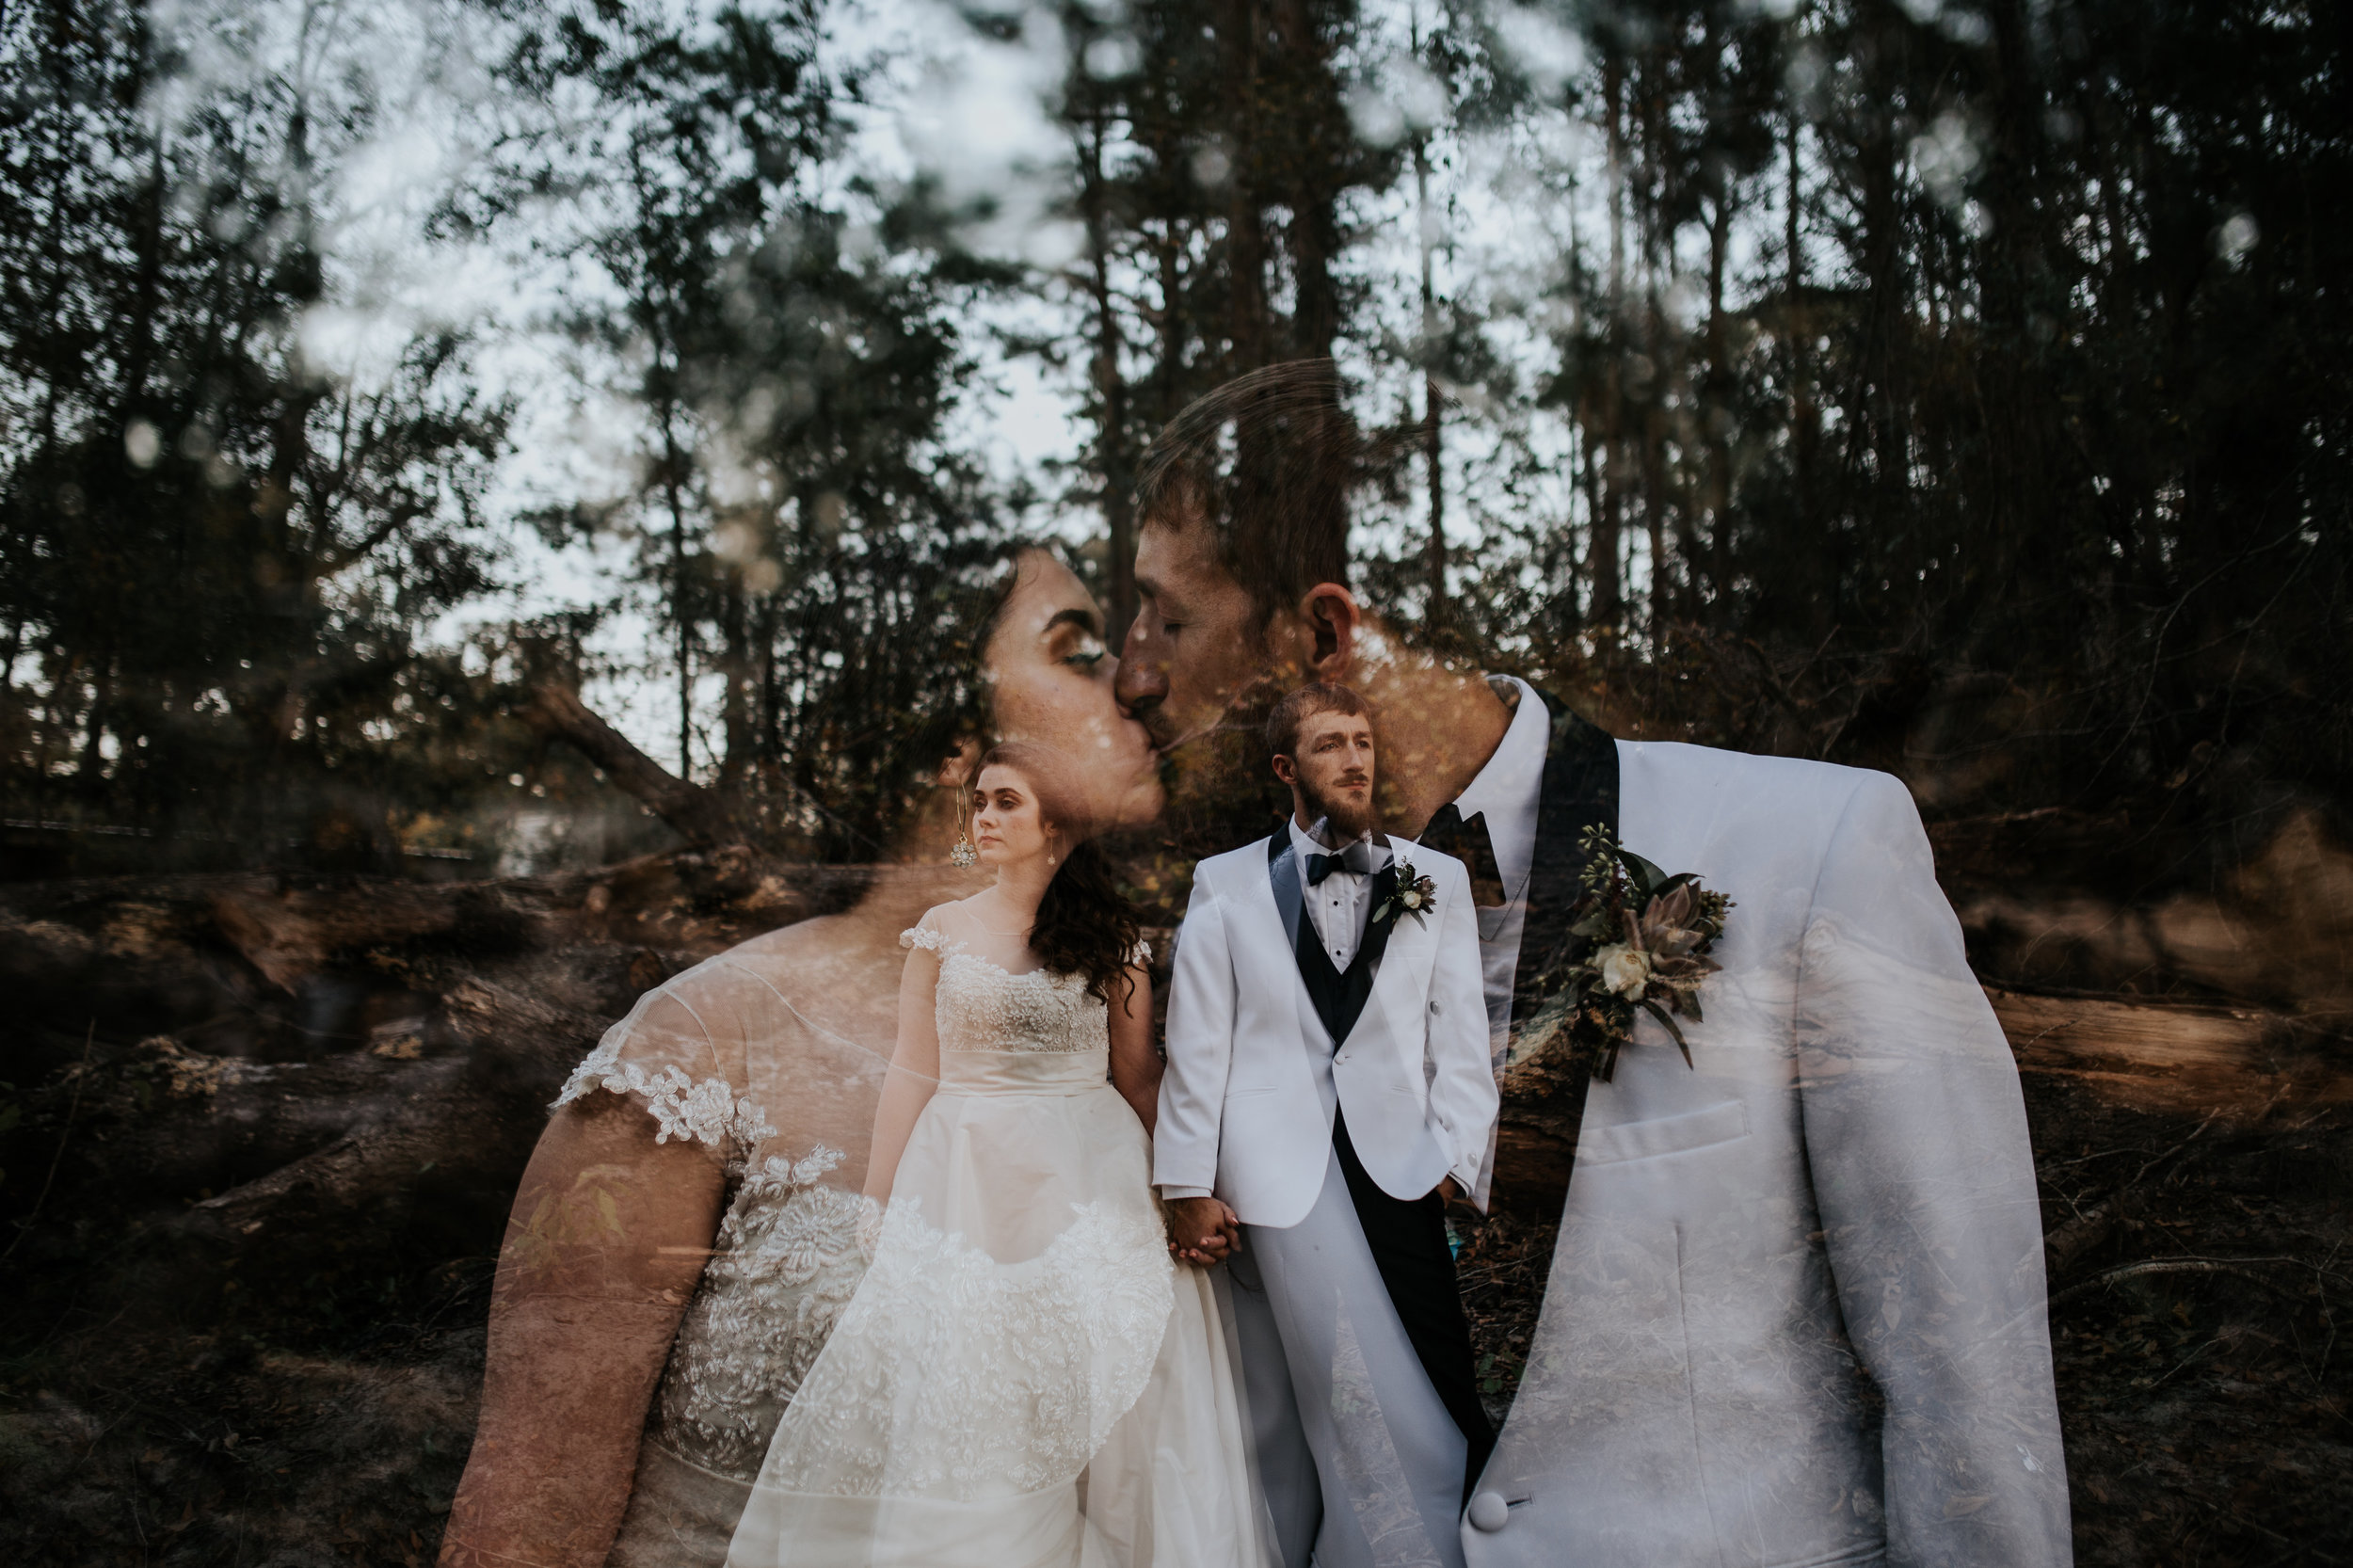 - Loved having Hannah photograph our wedding. She's so personal and kind. She really wants to get to know you both as a couple instead of just everyday clients. We loved that relationship with her!- Allyson